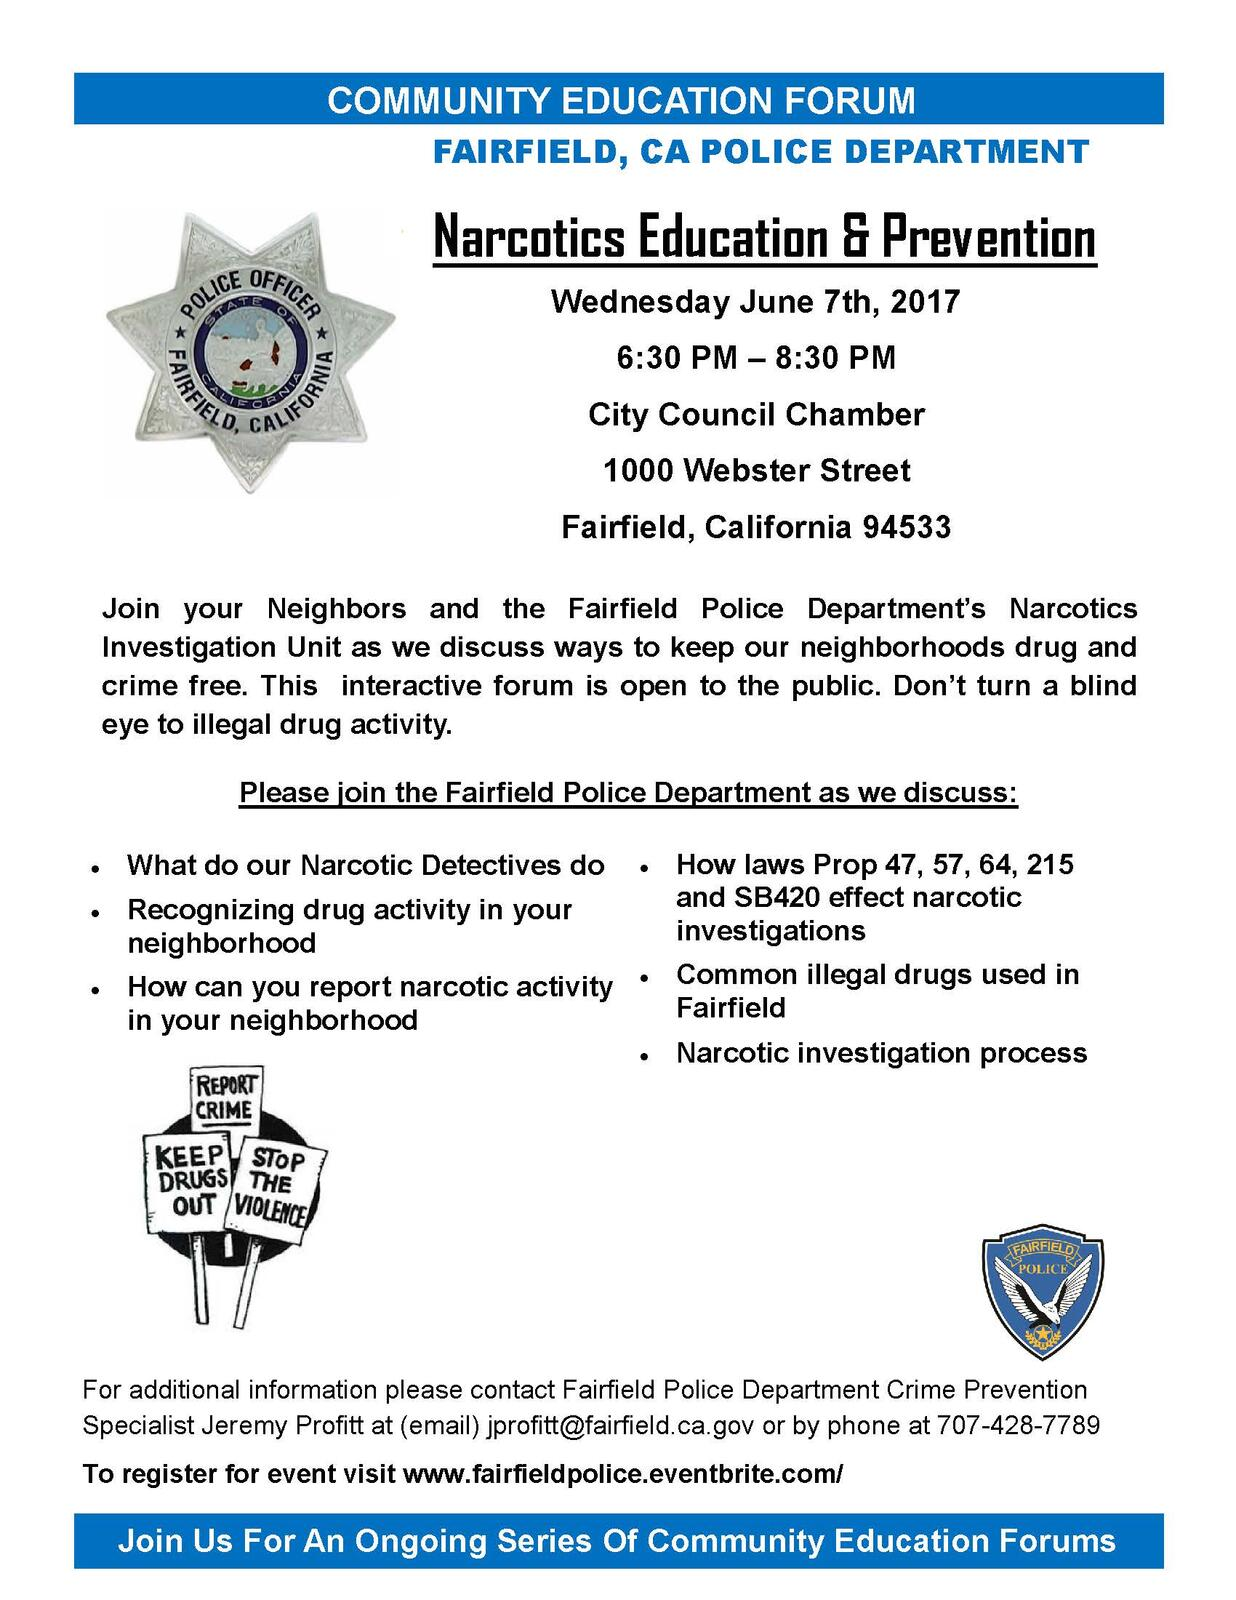 Community Education Forum: Narcotics Education and